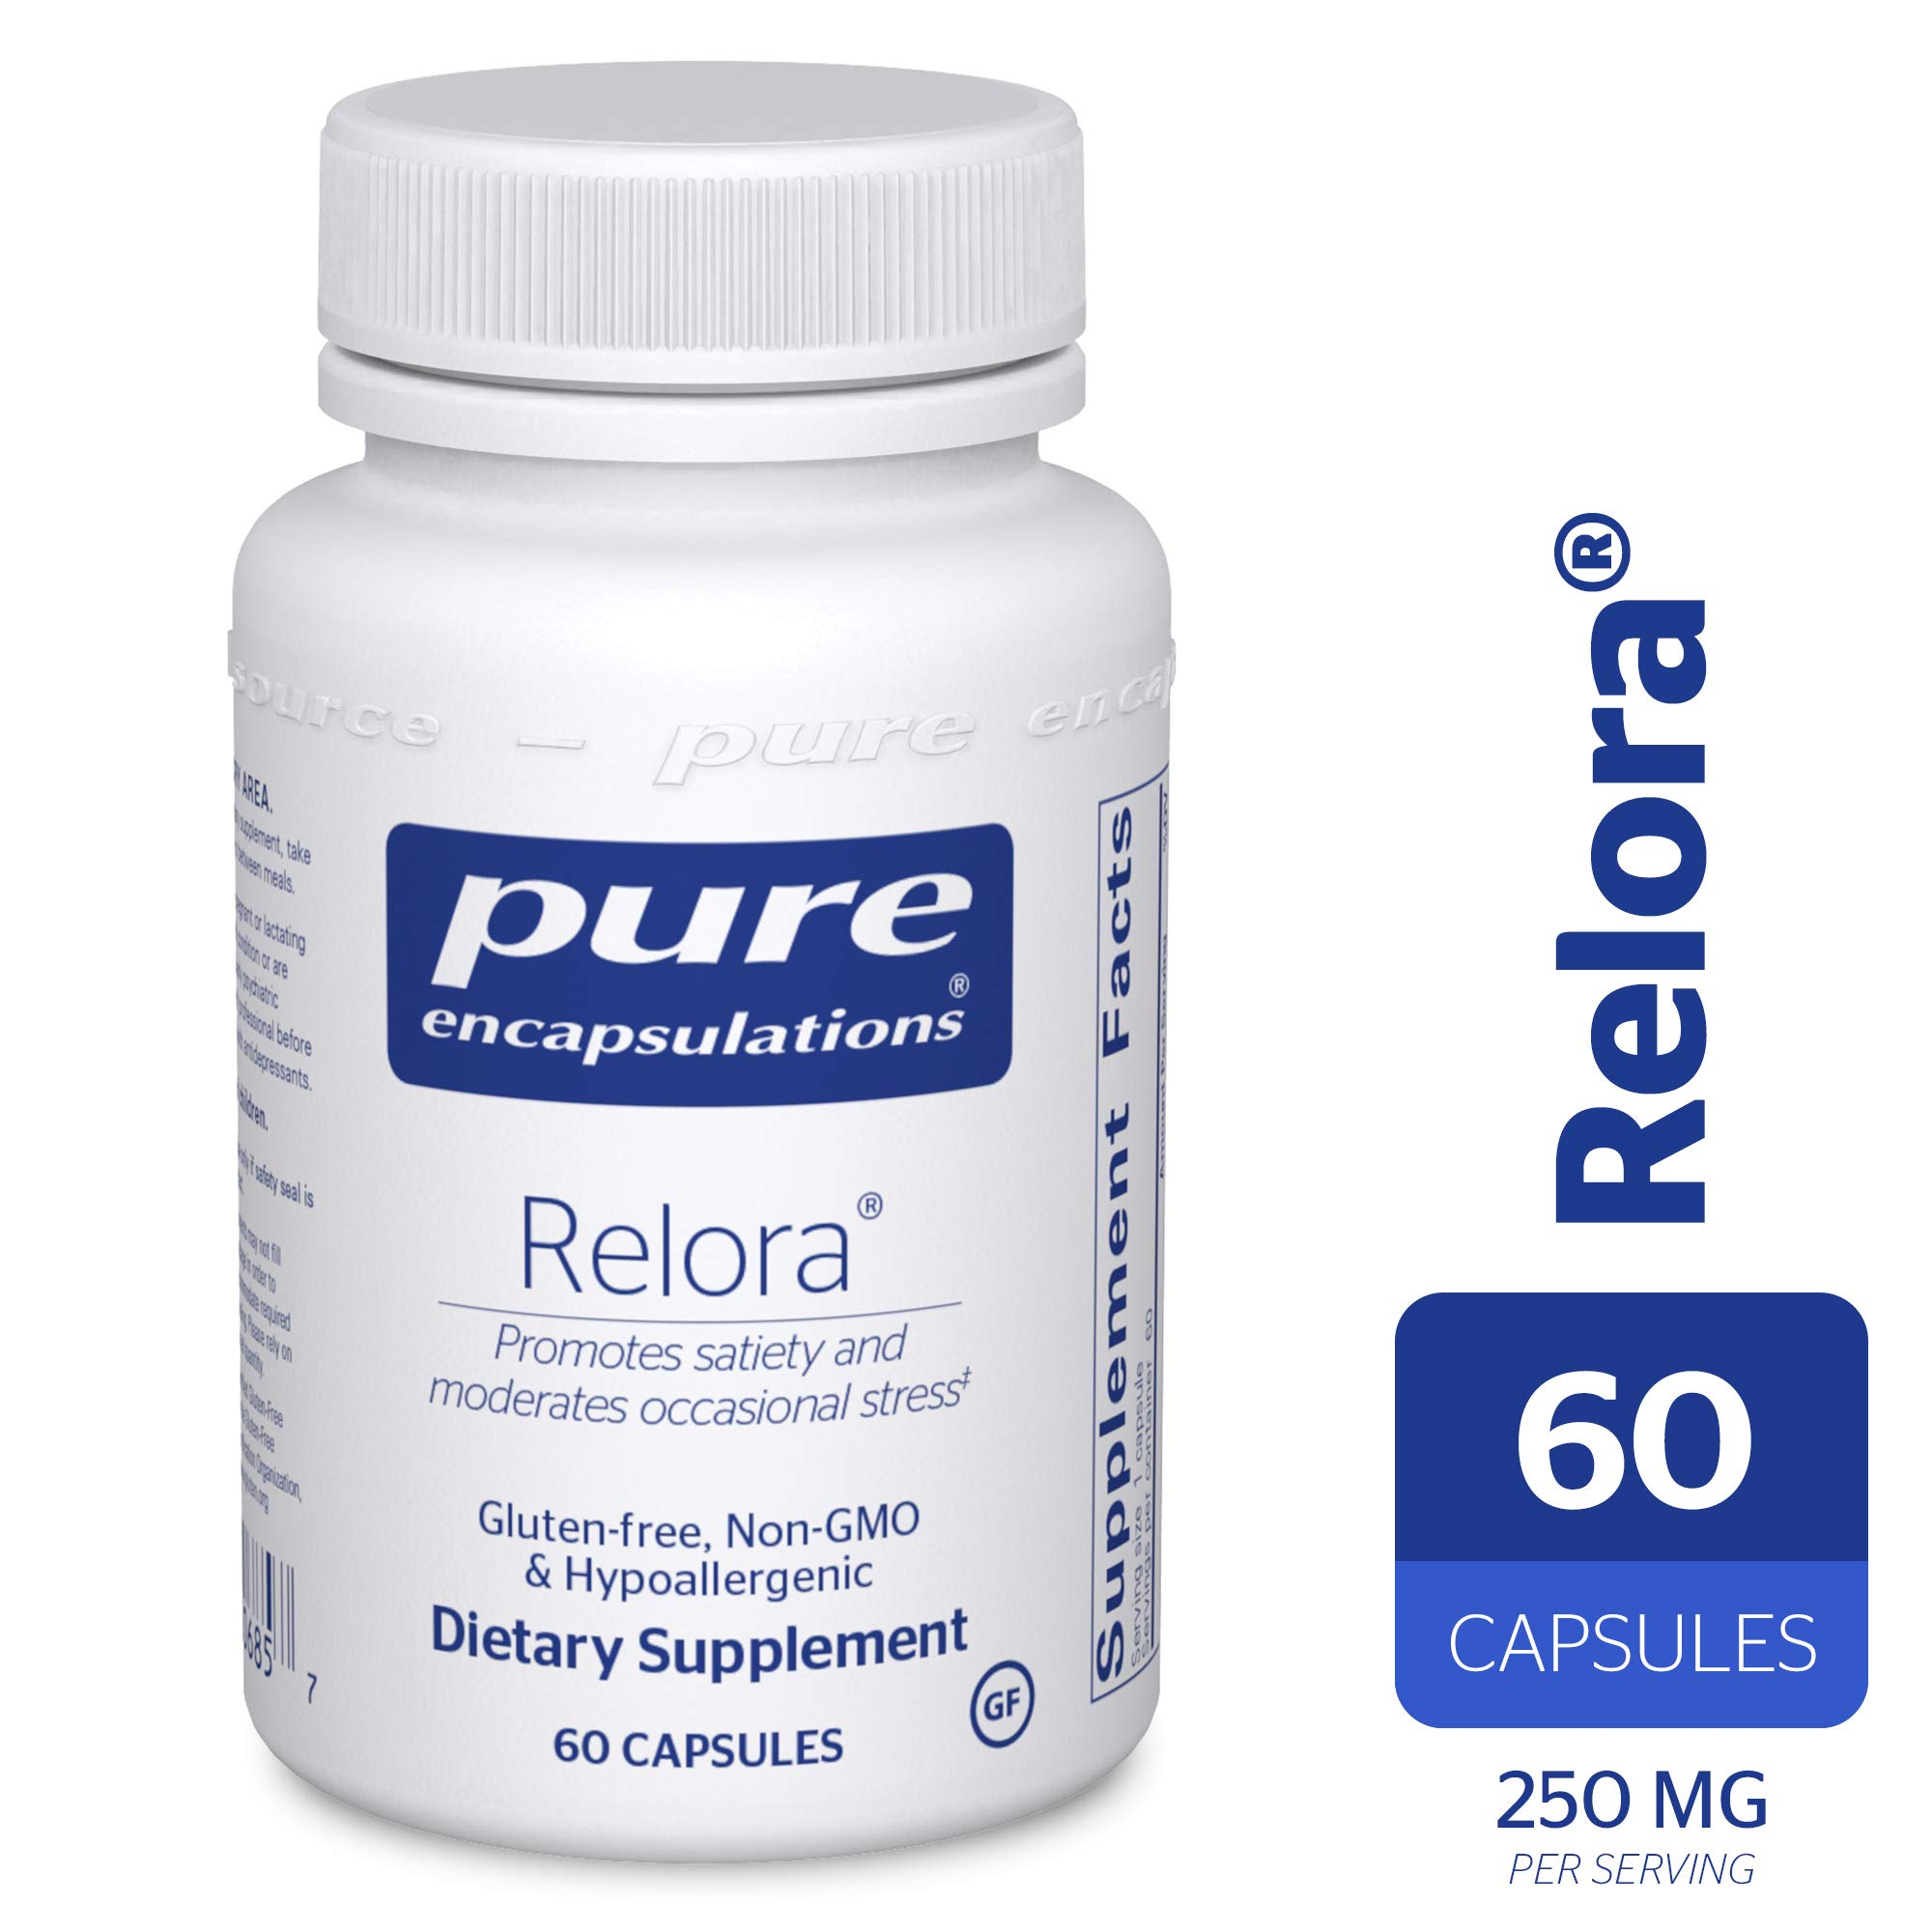 Pure Encapsulations - Relora - Hypoallergenic Supplement Promotes Healthy Cortisol and DHEA Production and Moderates Occasional Stress* - 60 Capsules by Pure Encapsulations